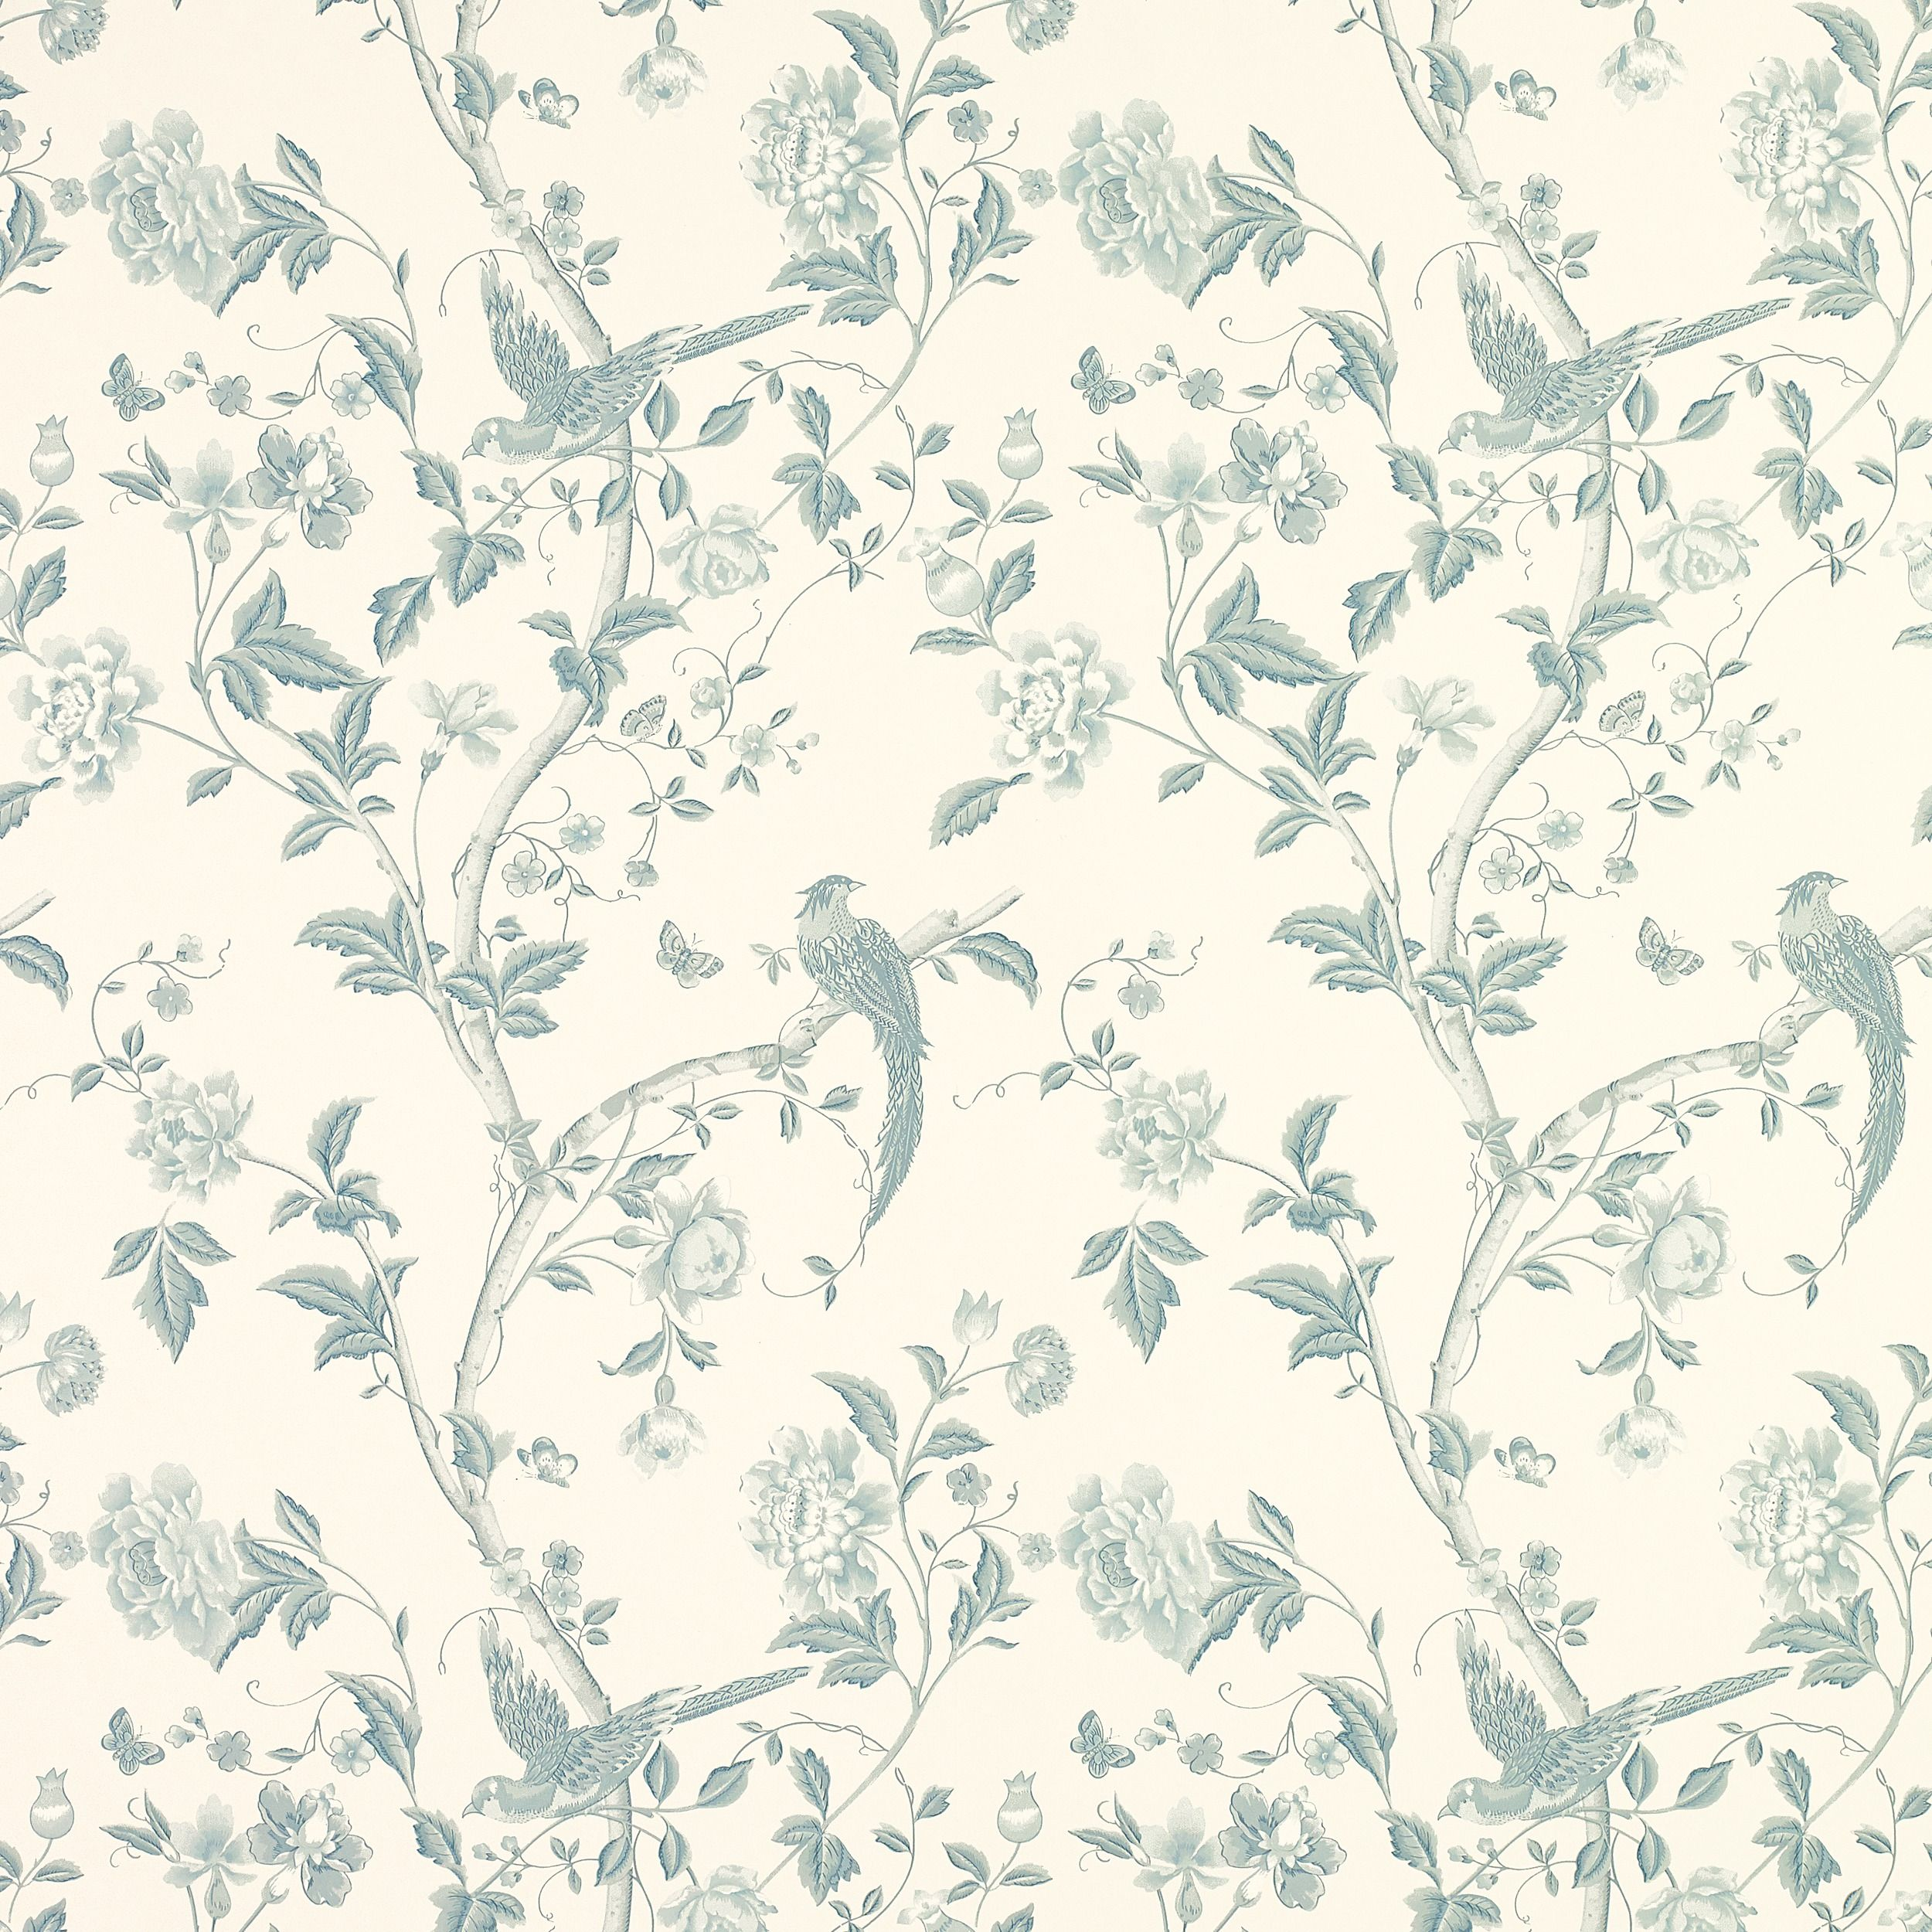 Pin on wallpaper and upholstery fabric